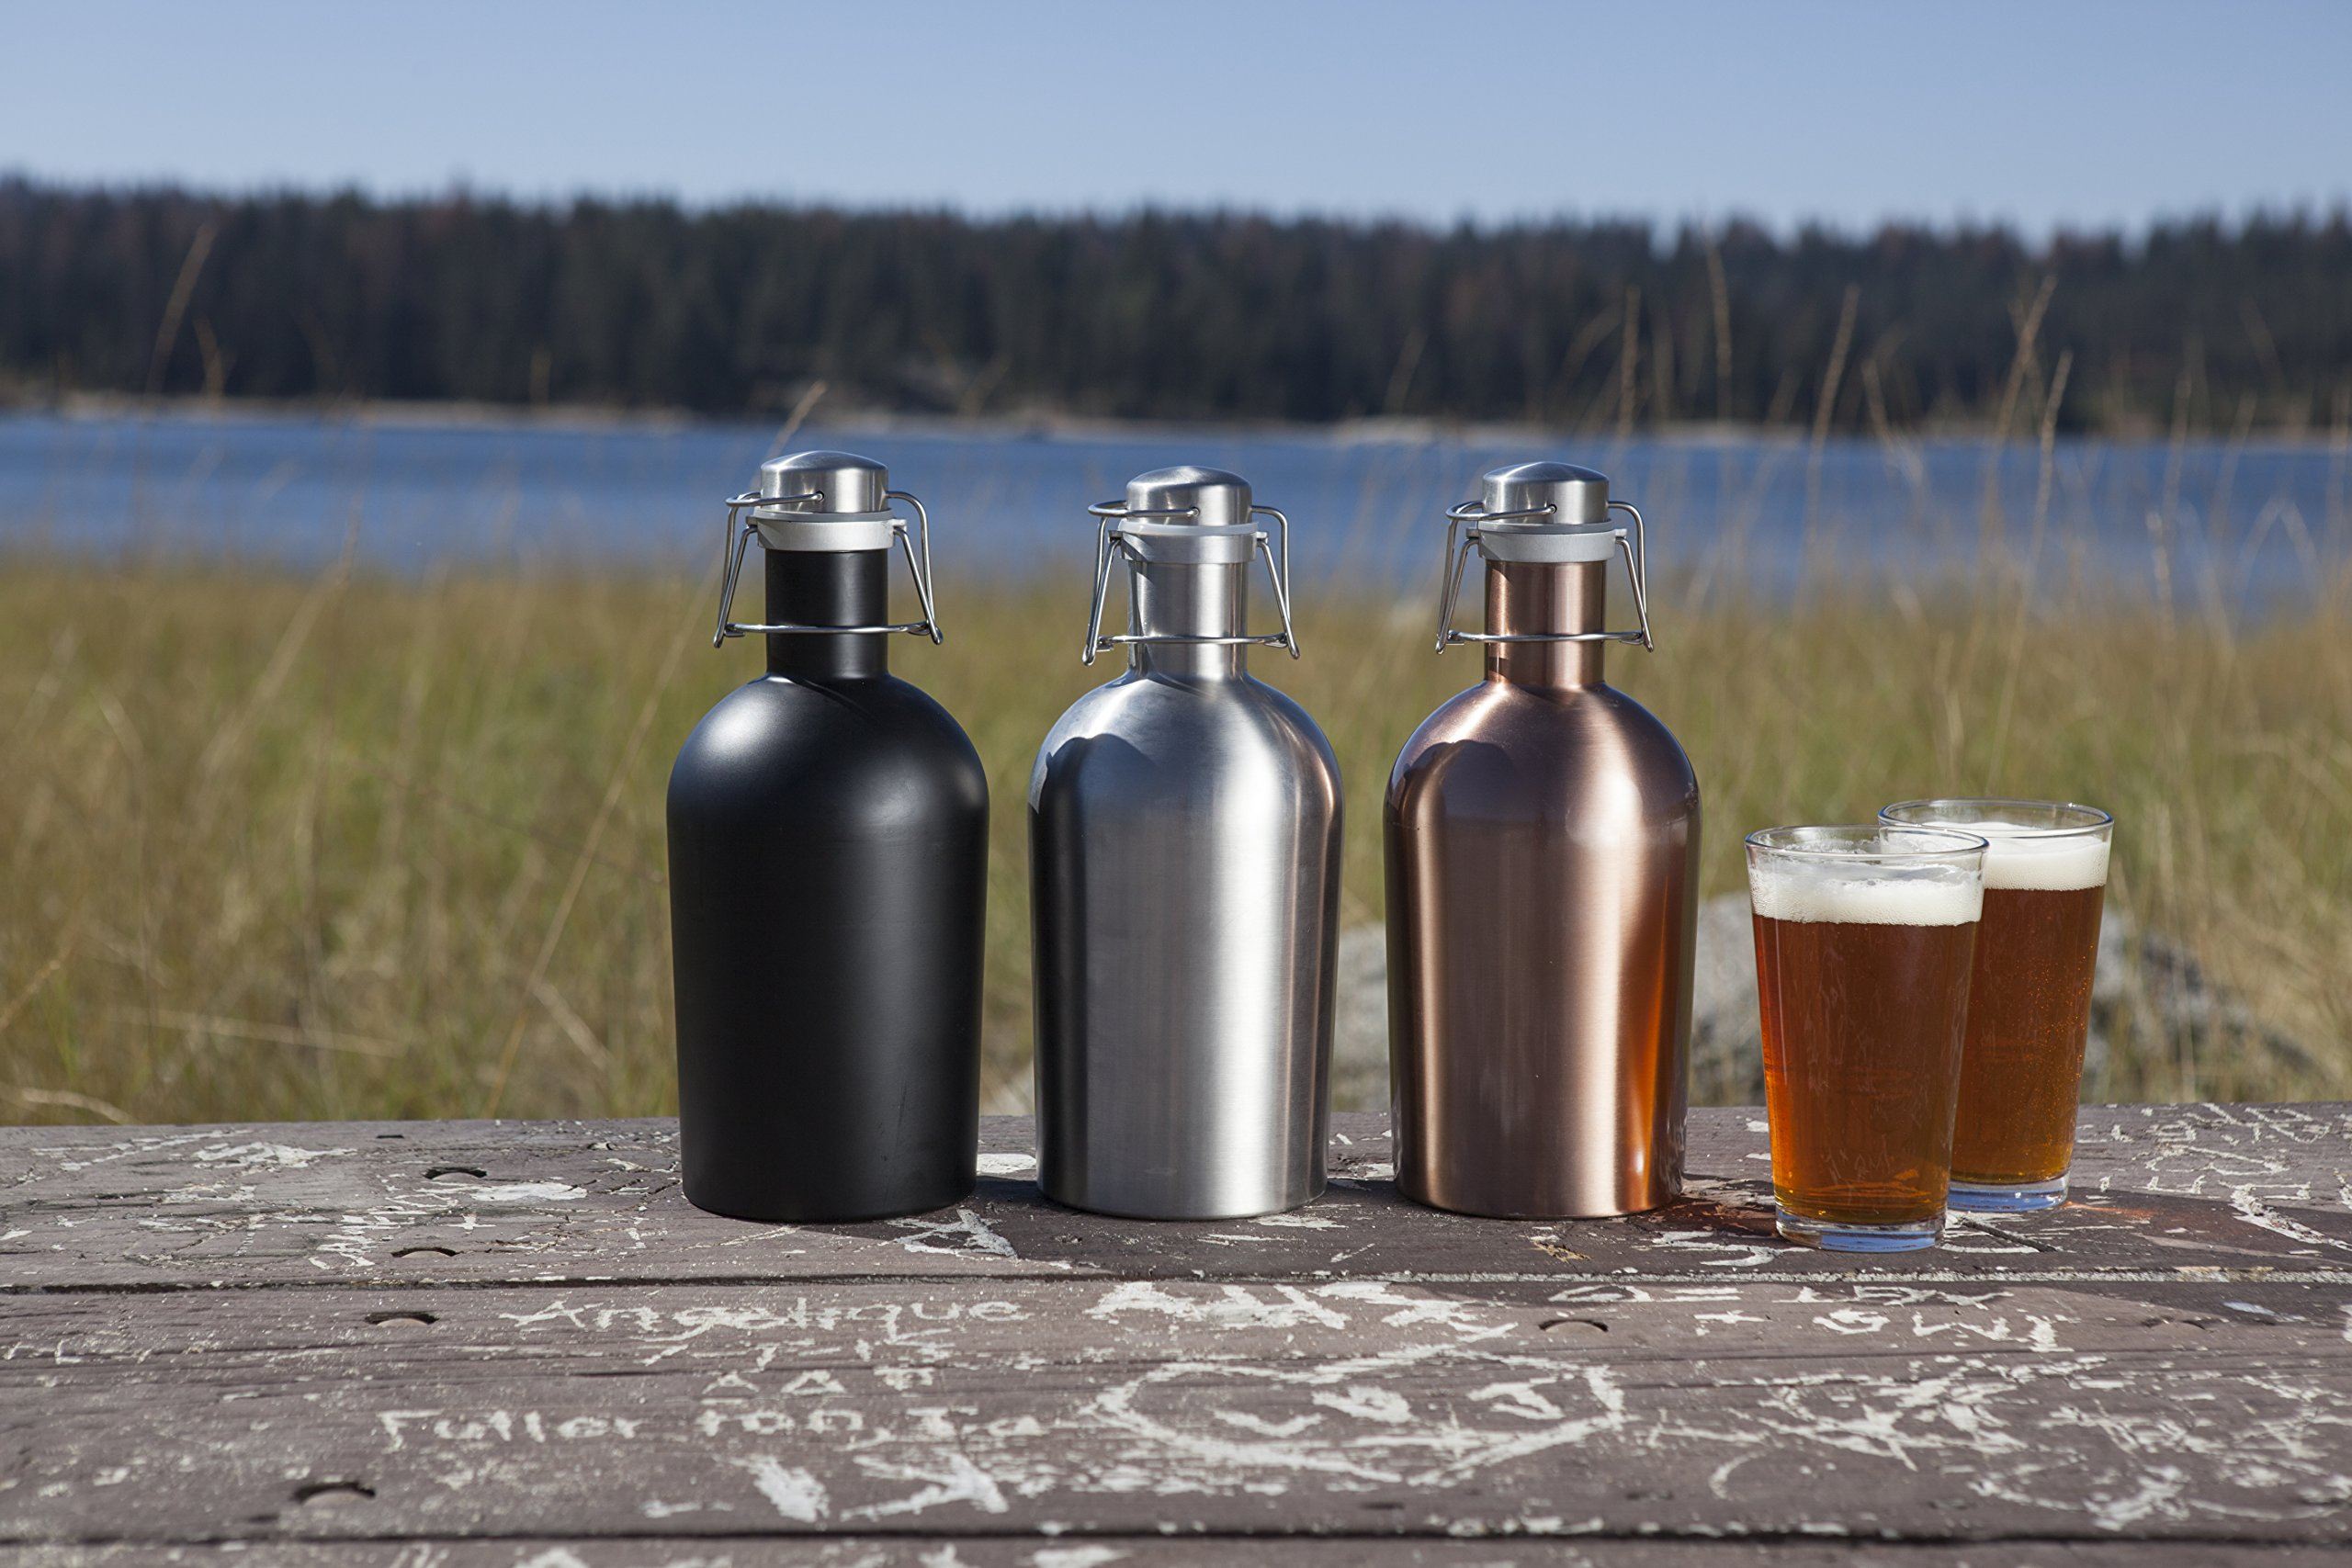 Stainless Steel 64-Ounce Beer Growler by LEGACY - a Picnic Time Brand by LEGACY - a Picnic Time Brand (Image #4)